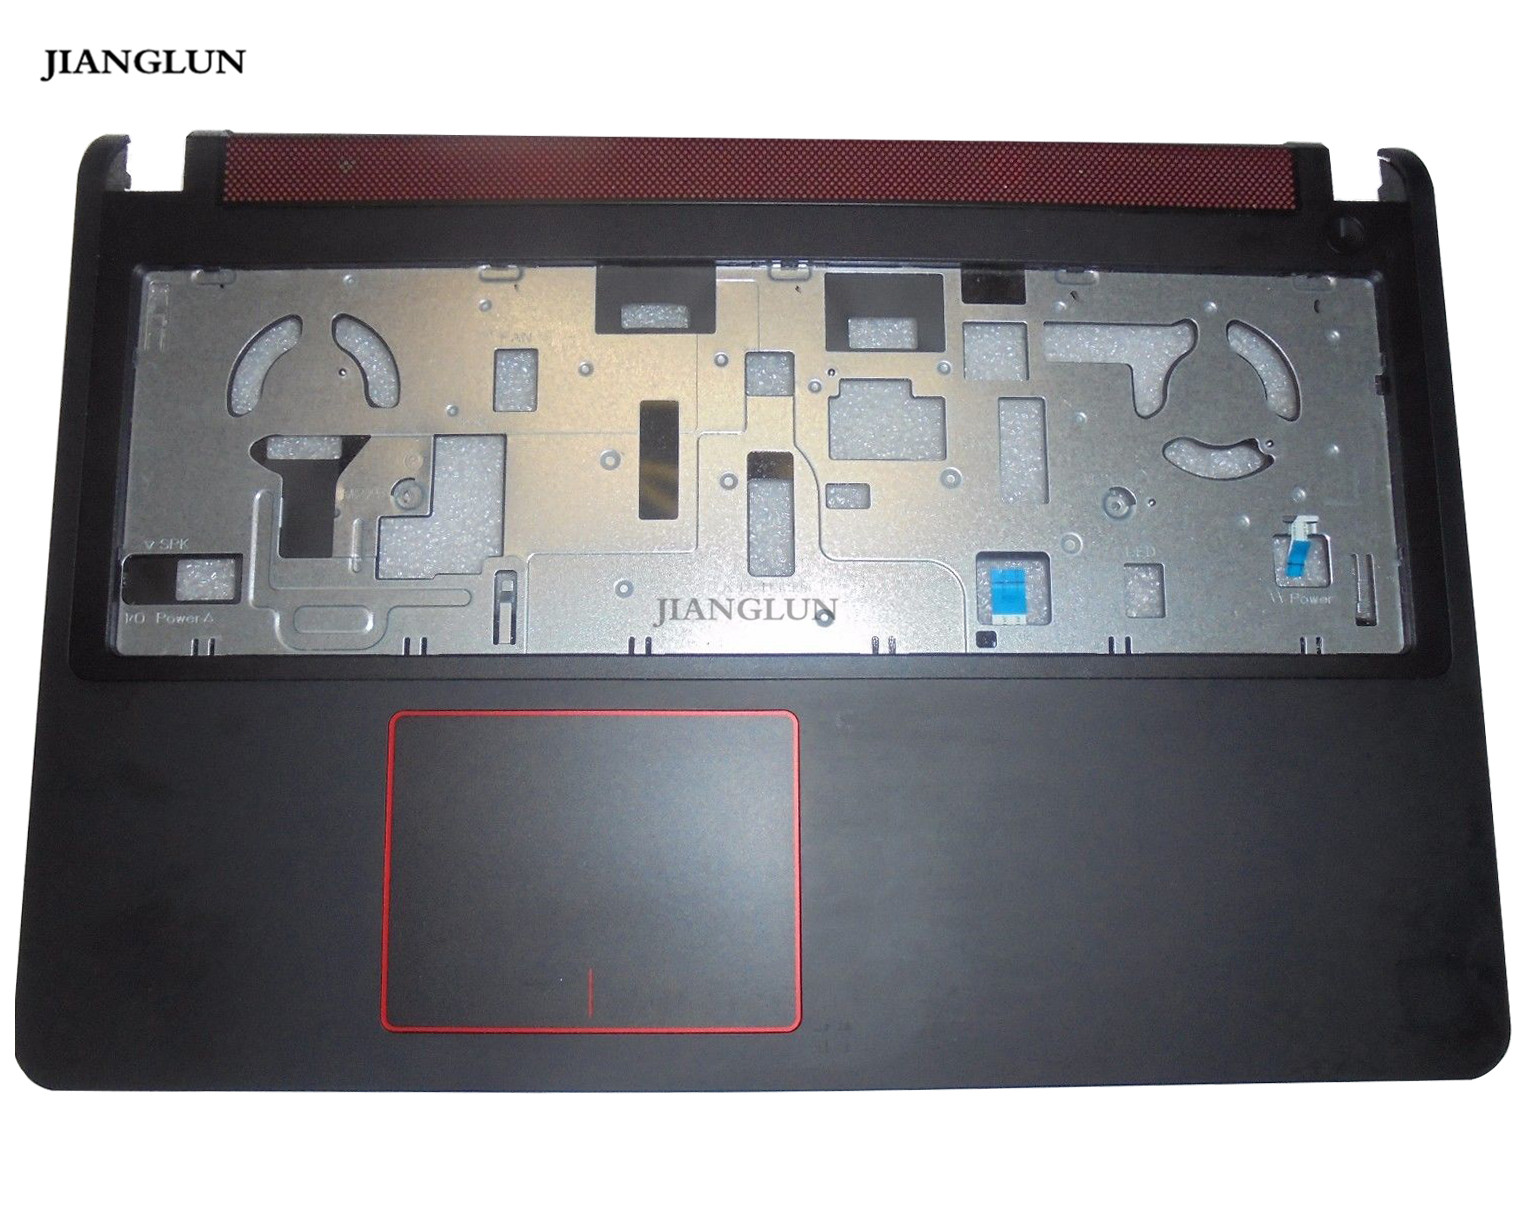 JIANGLUN For <font><b>Dell</b></font> <font><b>Inspiron</b></font> <font><b>15</b></font> <font><b>7559</b></font> Palmrest Top Case with Touchpad image